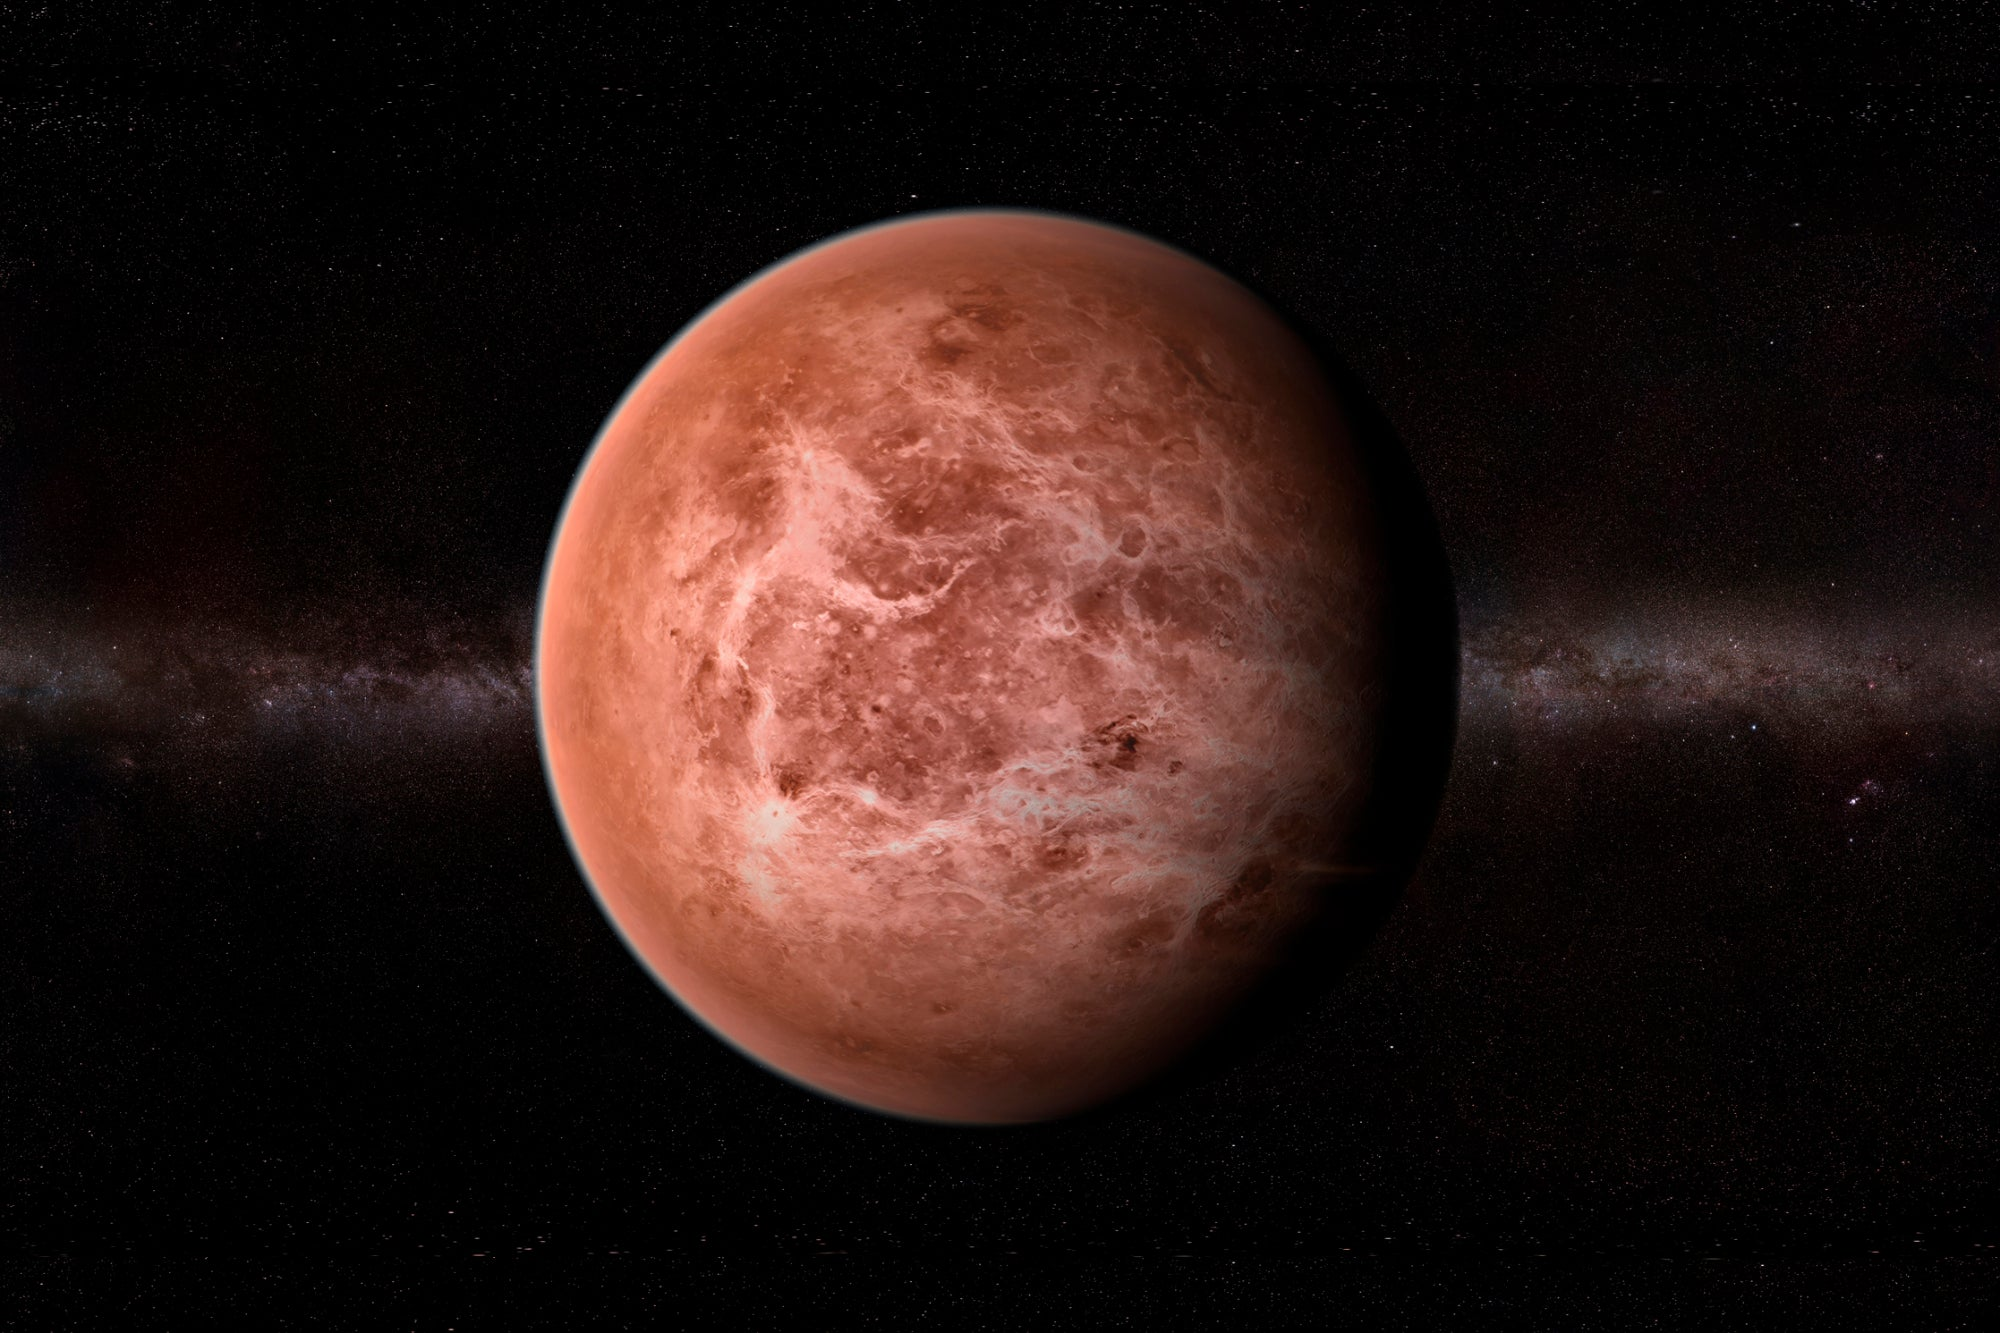 Possible Signs of Life Found On Venus. Elon Musk and Jeff Bezos Presumably Annoyed They Didn't Find Them First.